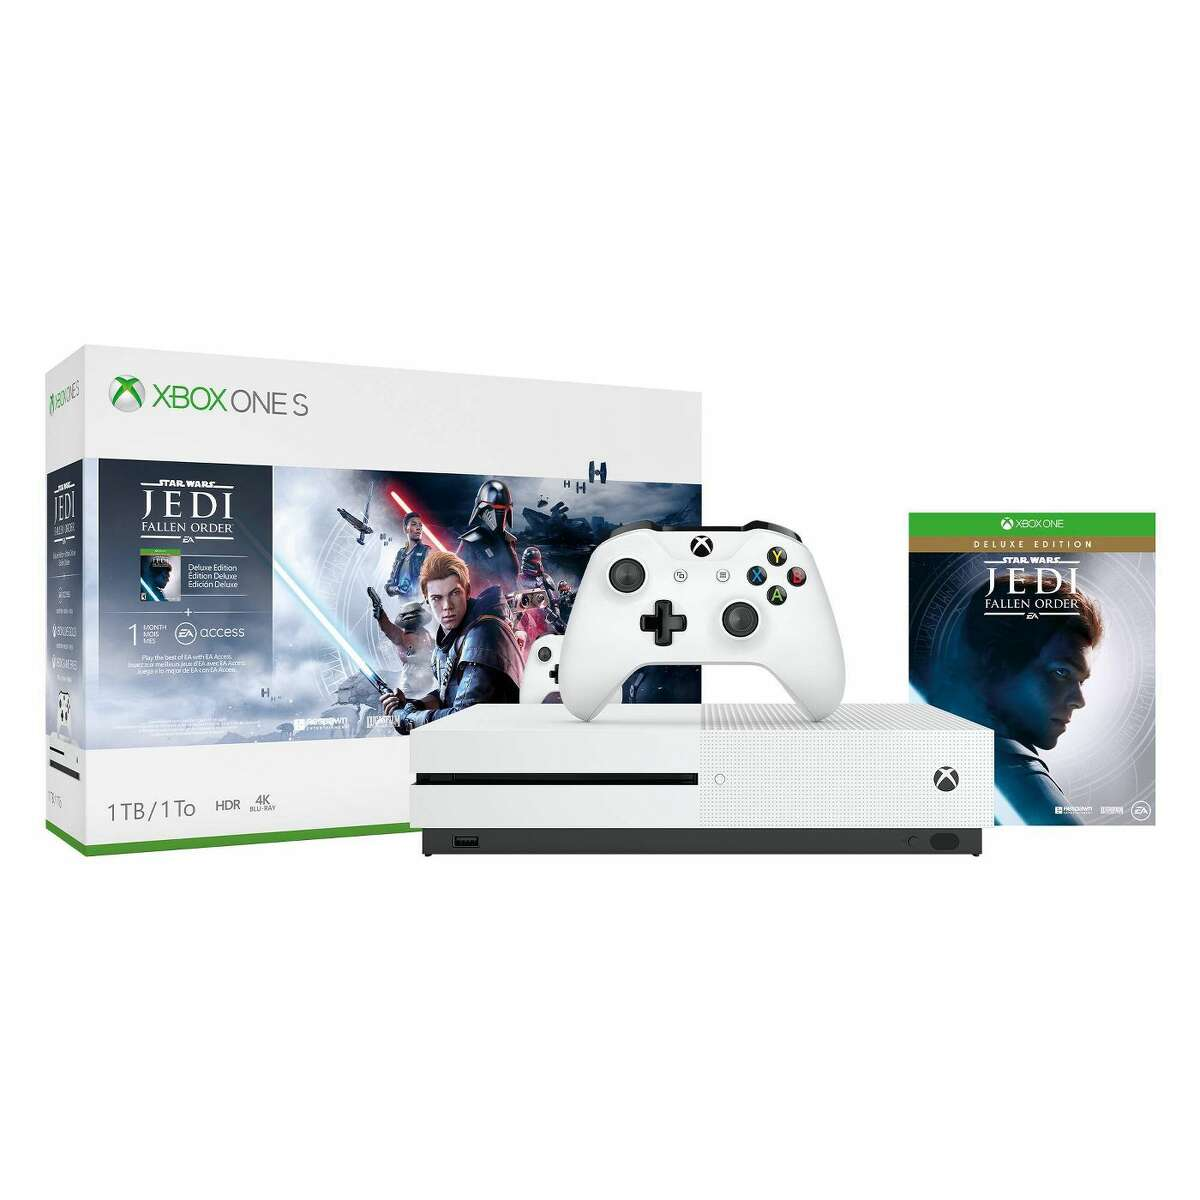 Target's selling this Star Wars Xbox One bundle for the same price as Amazon, but throwing in a $40 gift card to boot.